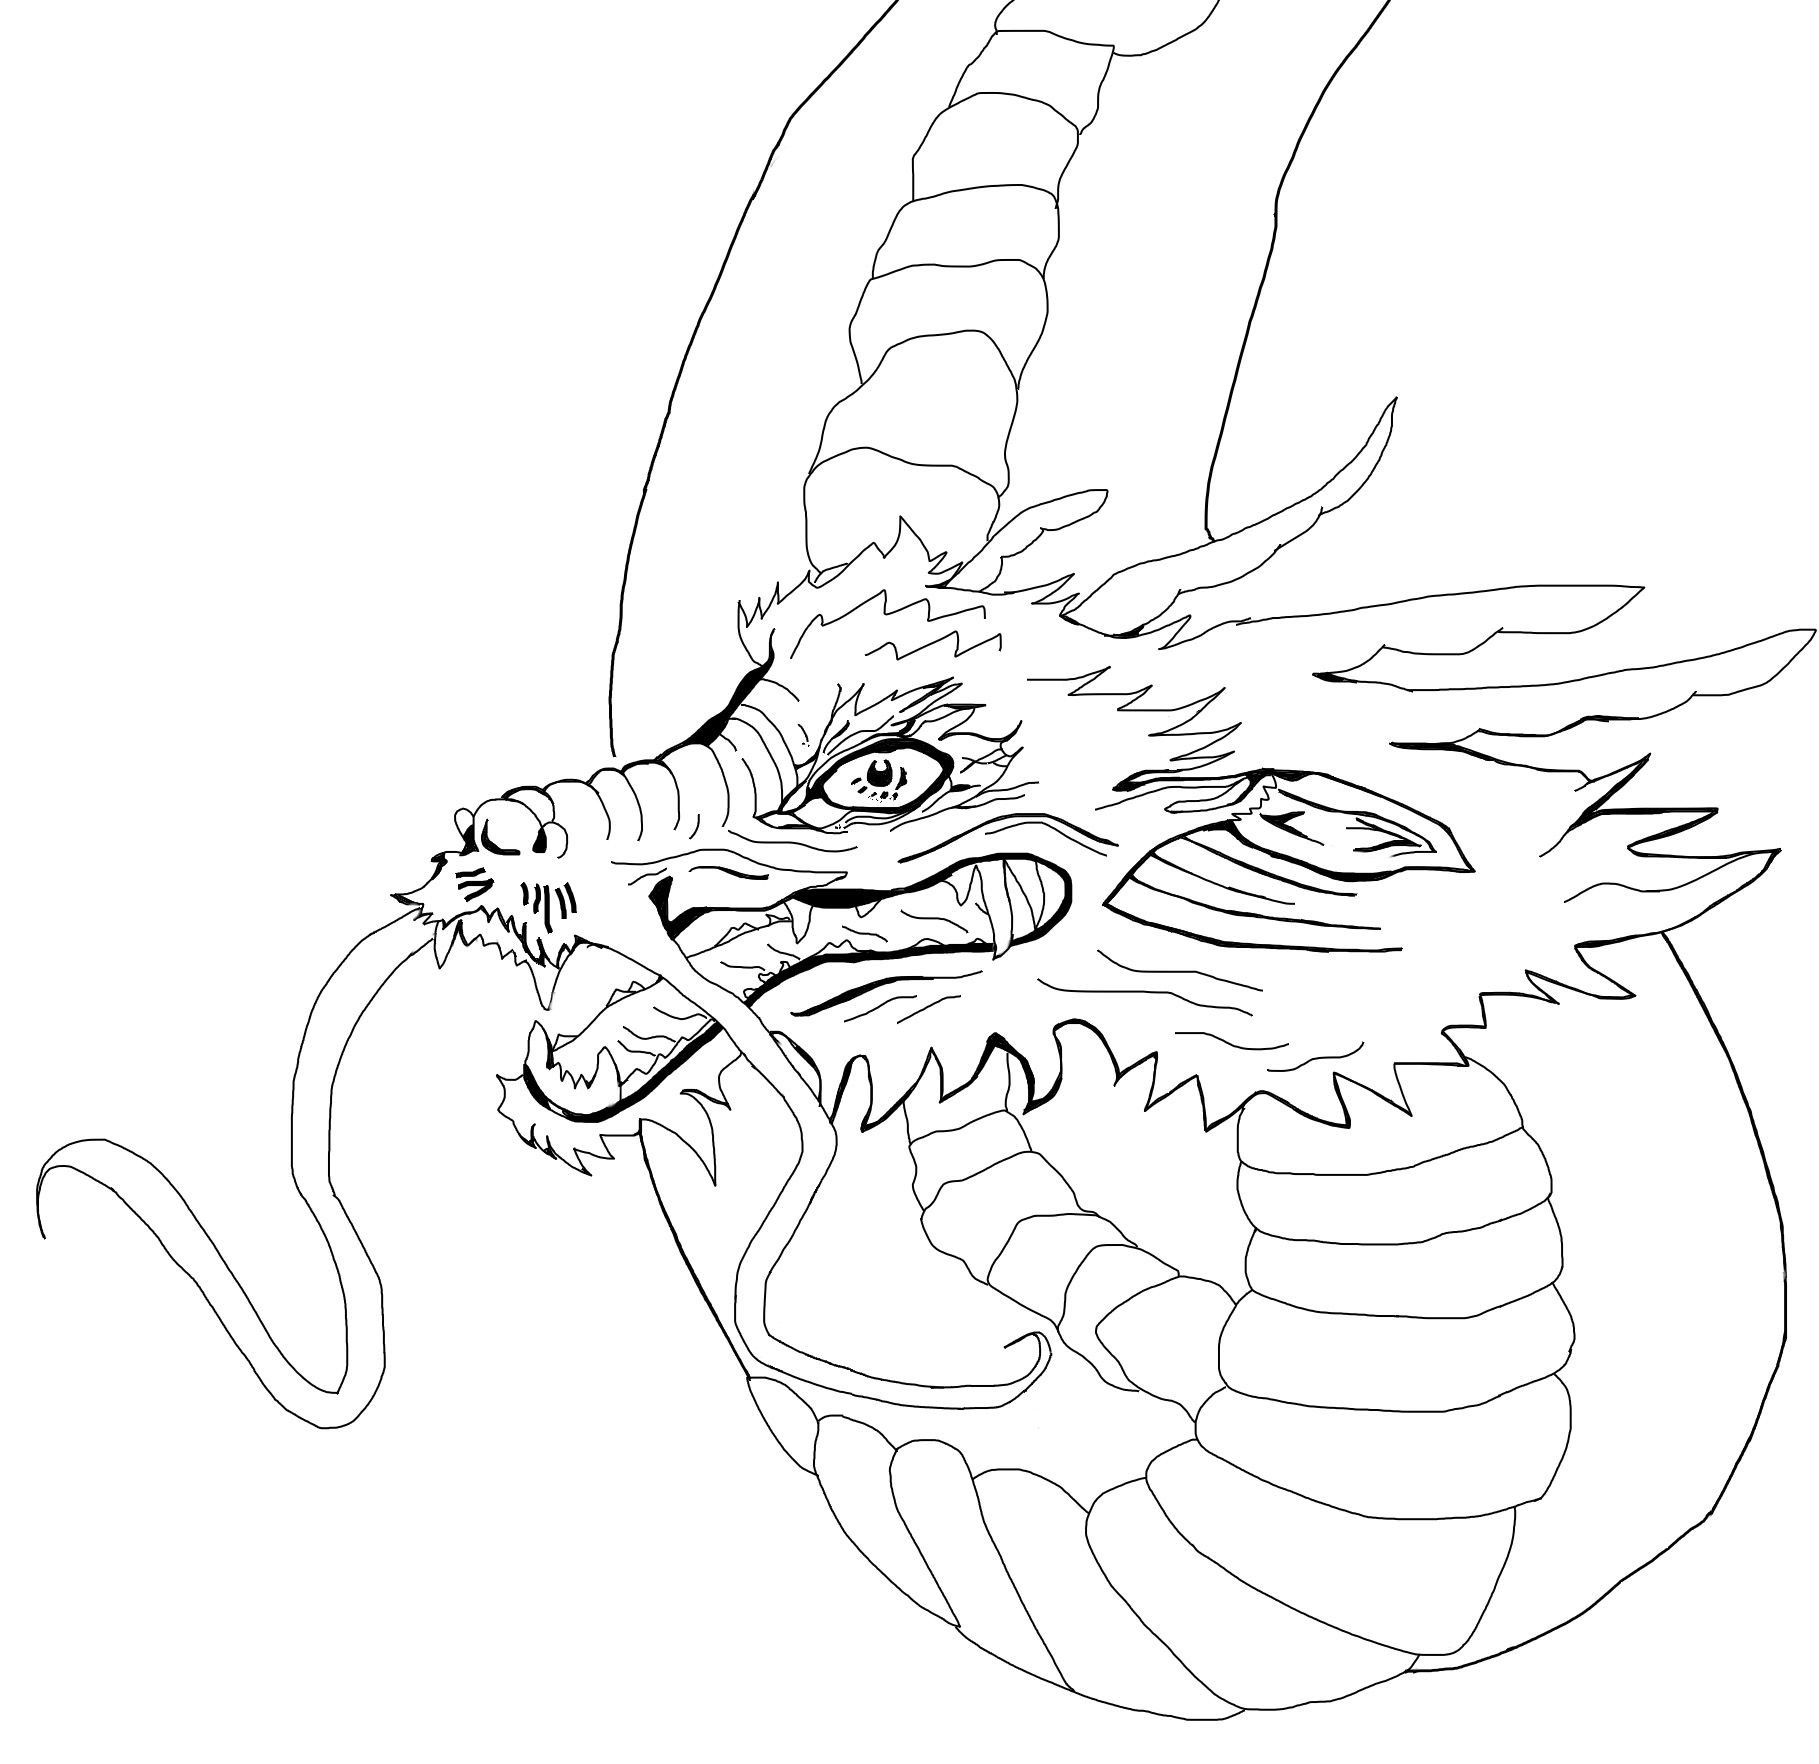 Line Art Dragon : Chinese dragon line drawings drawing pinterest